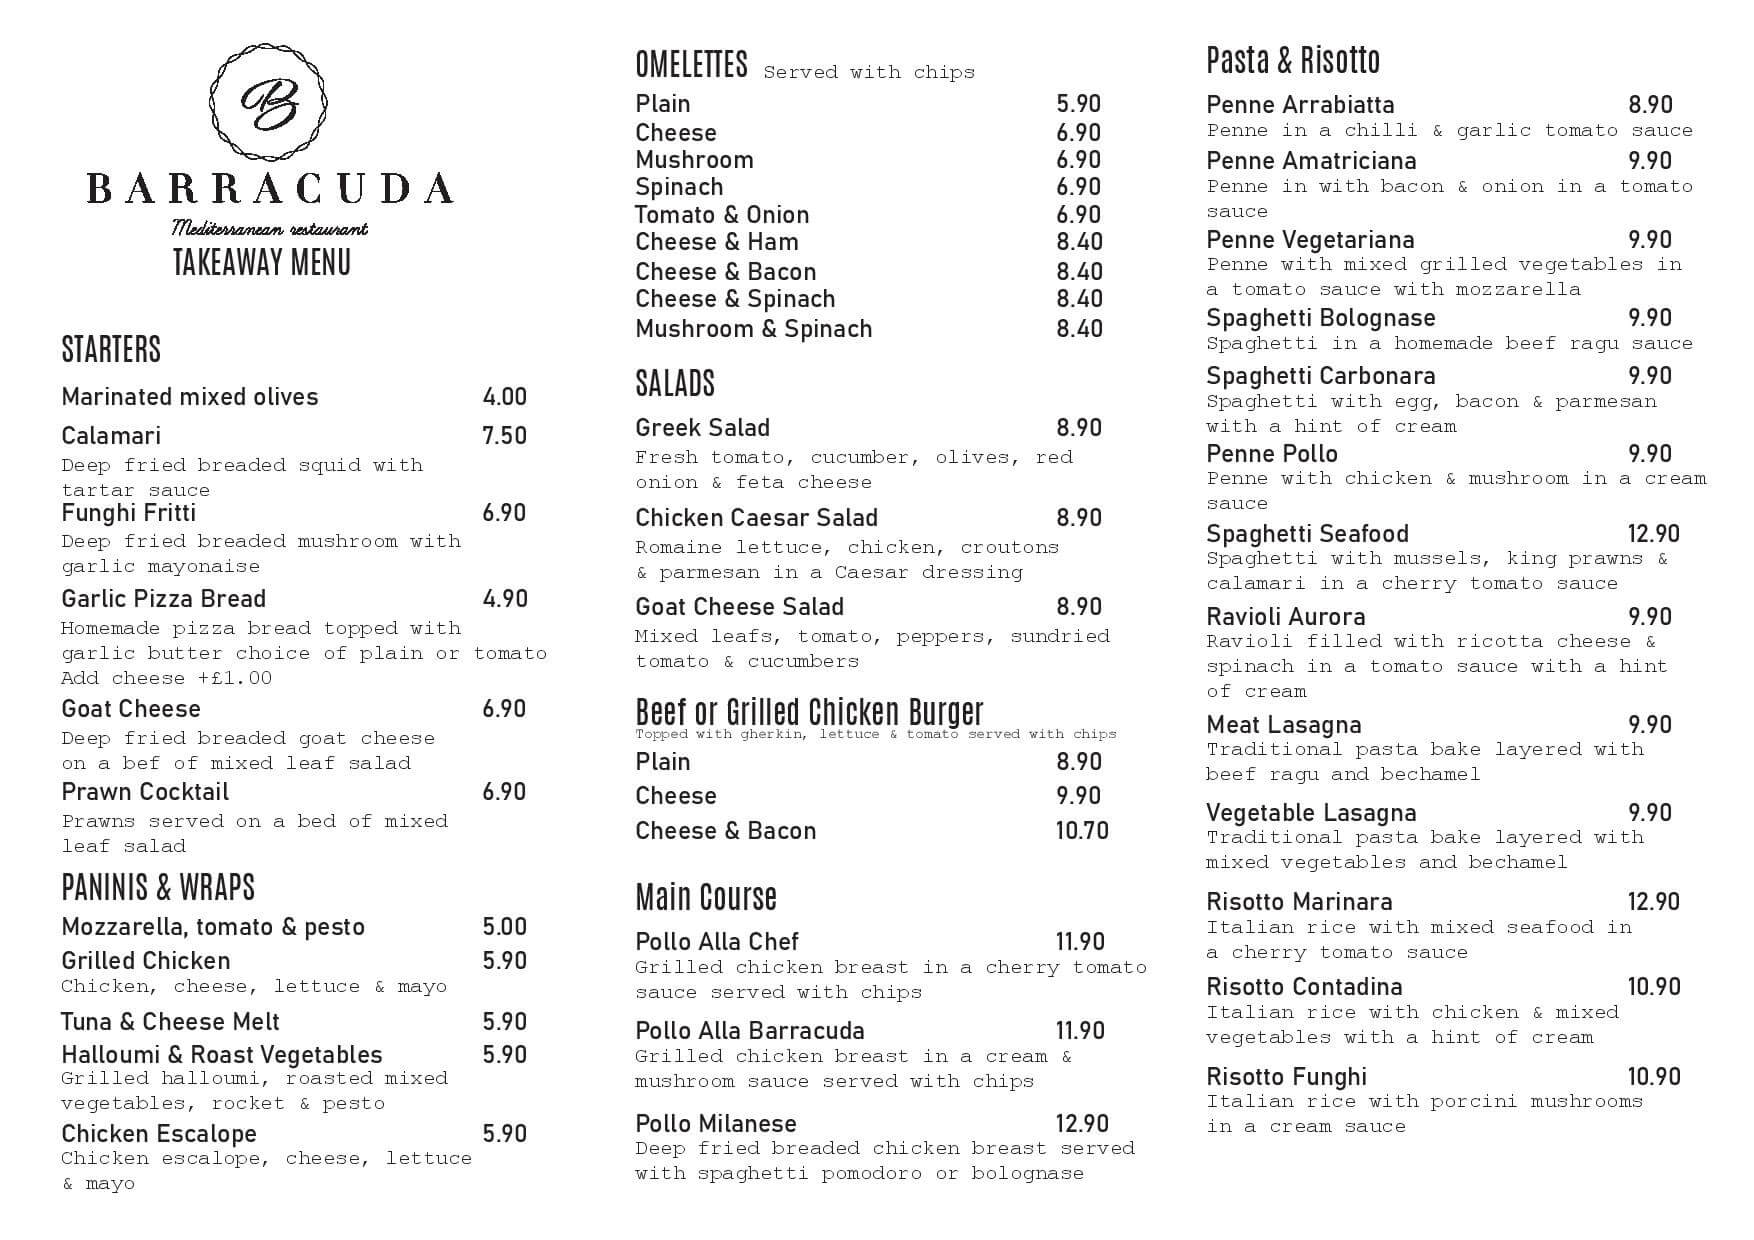 Barracuda Bushey Takeaway Menu